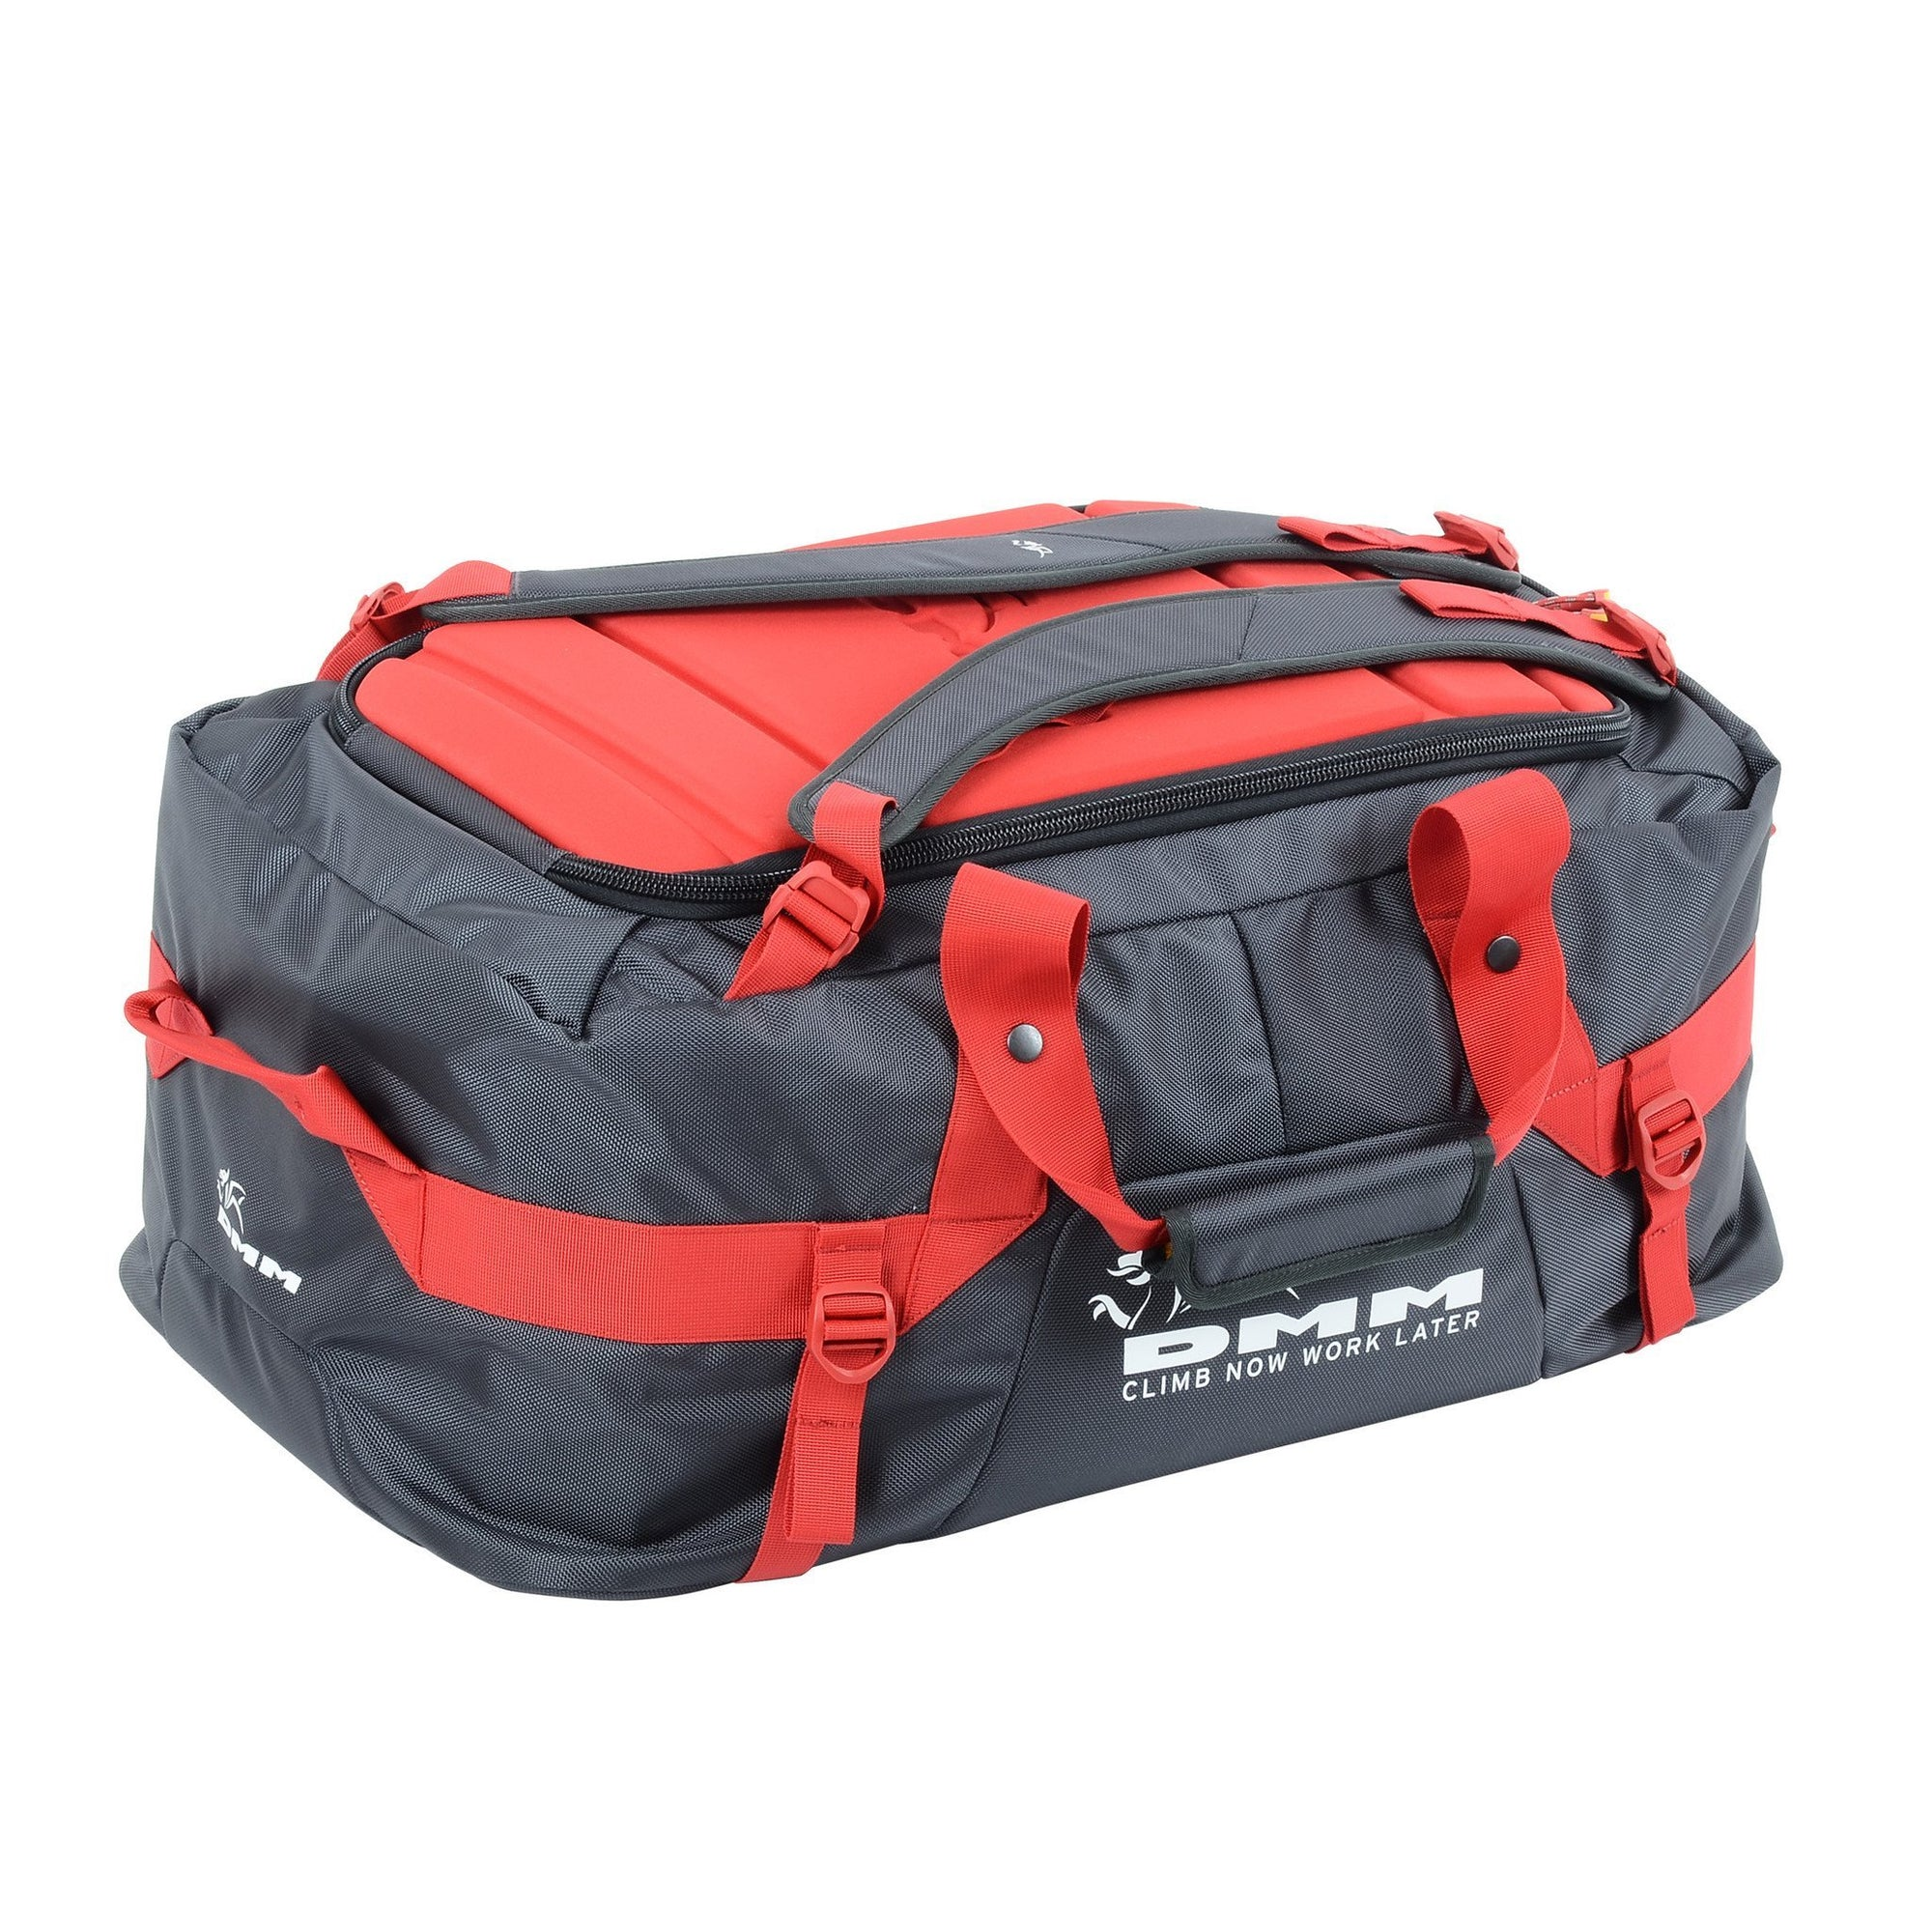 DMM Void climbing Duffel bag 75L, in red and black colours shown in carry mode